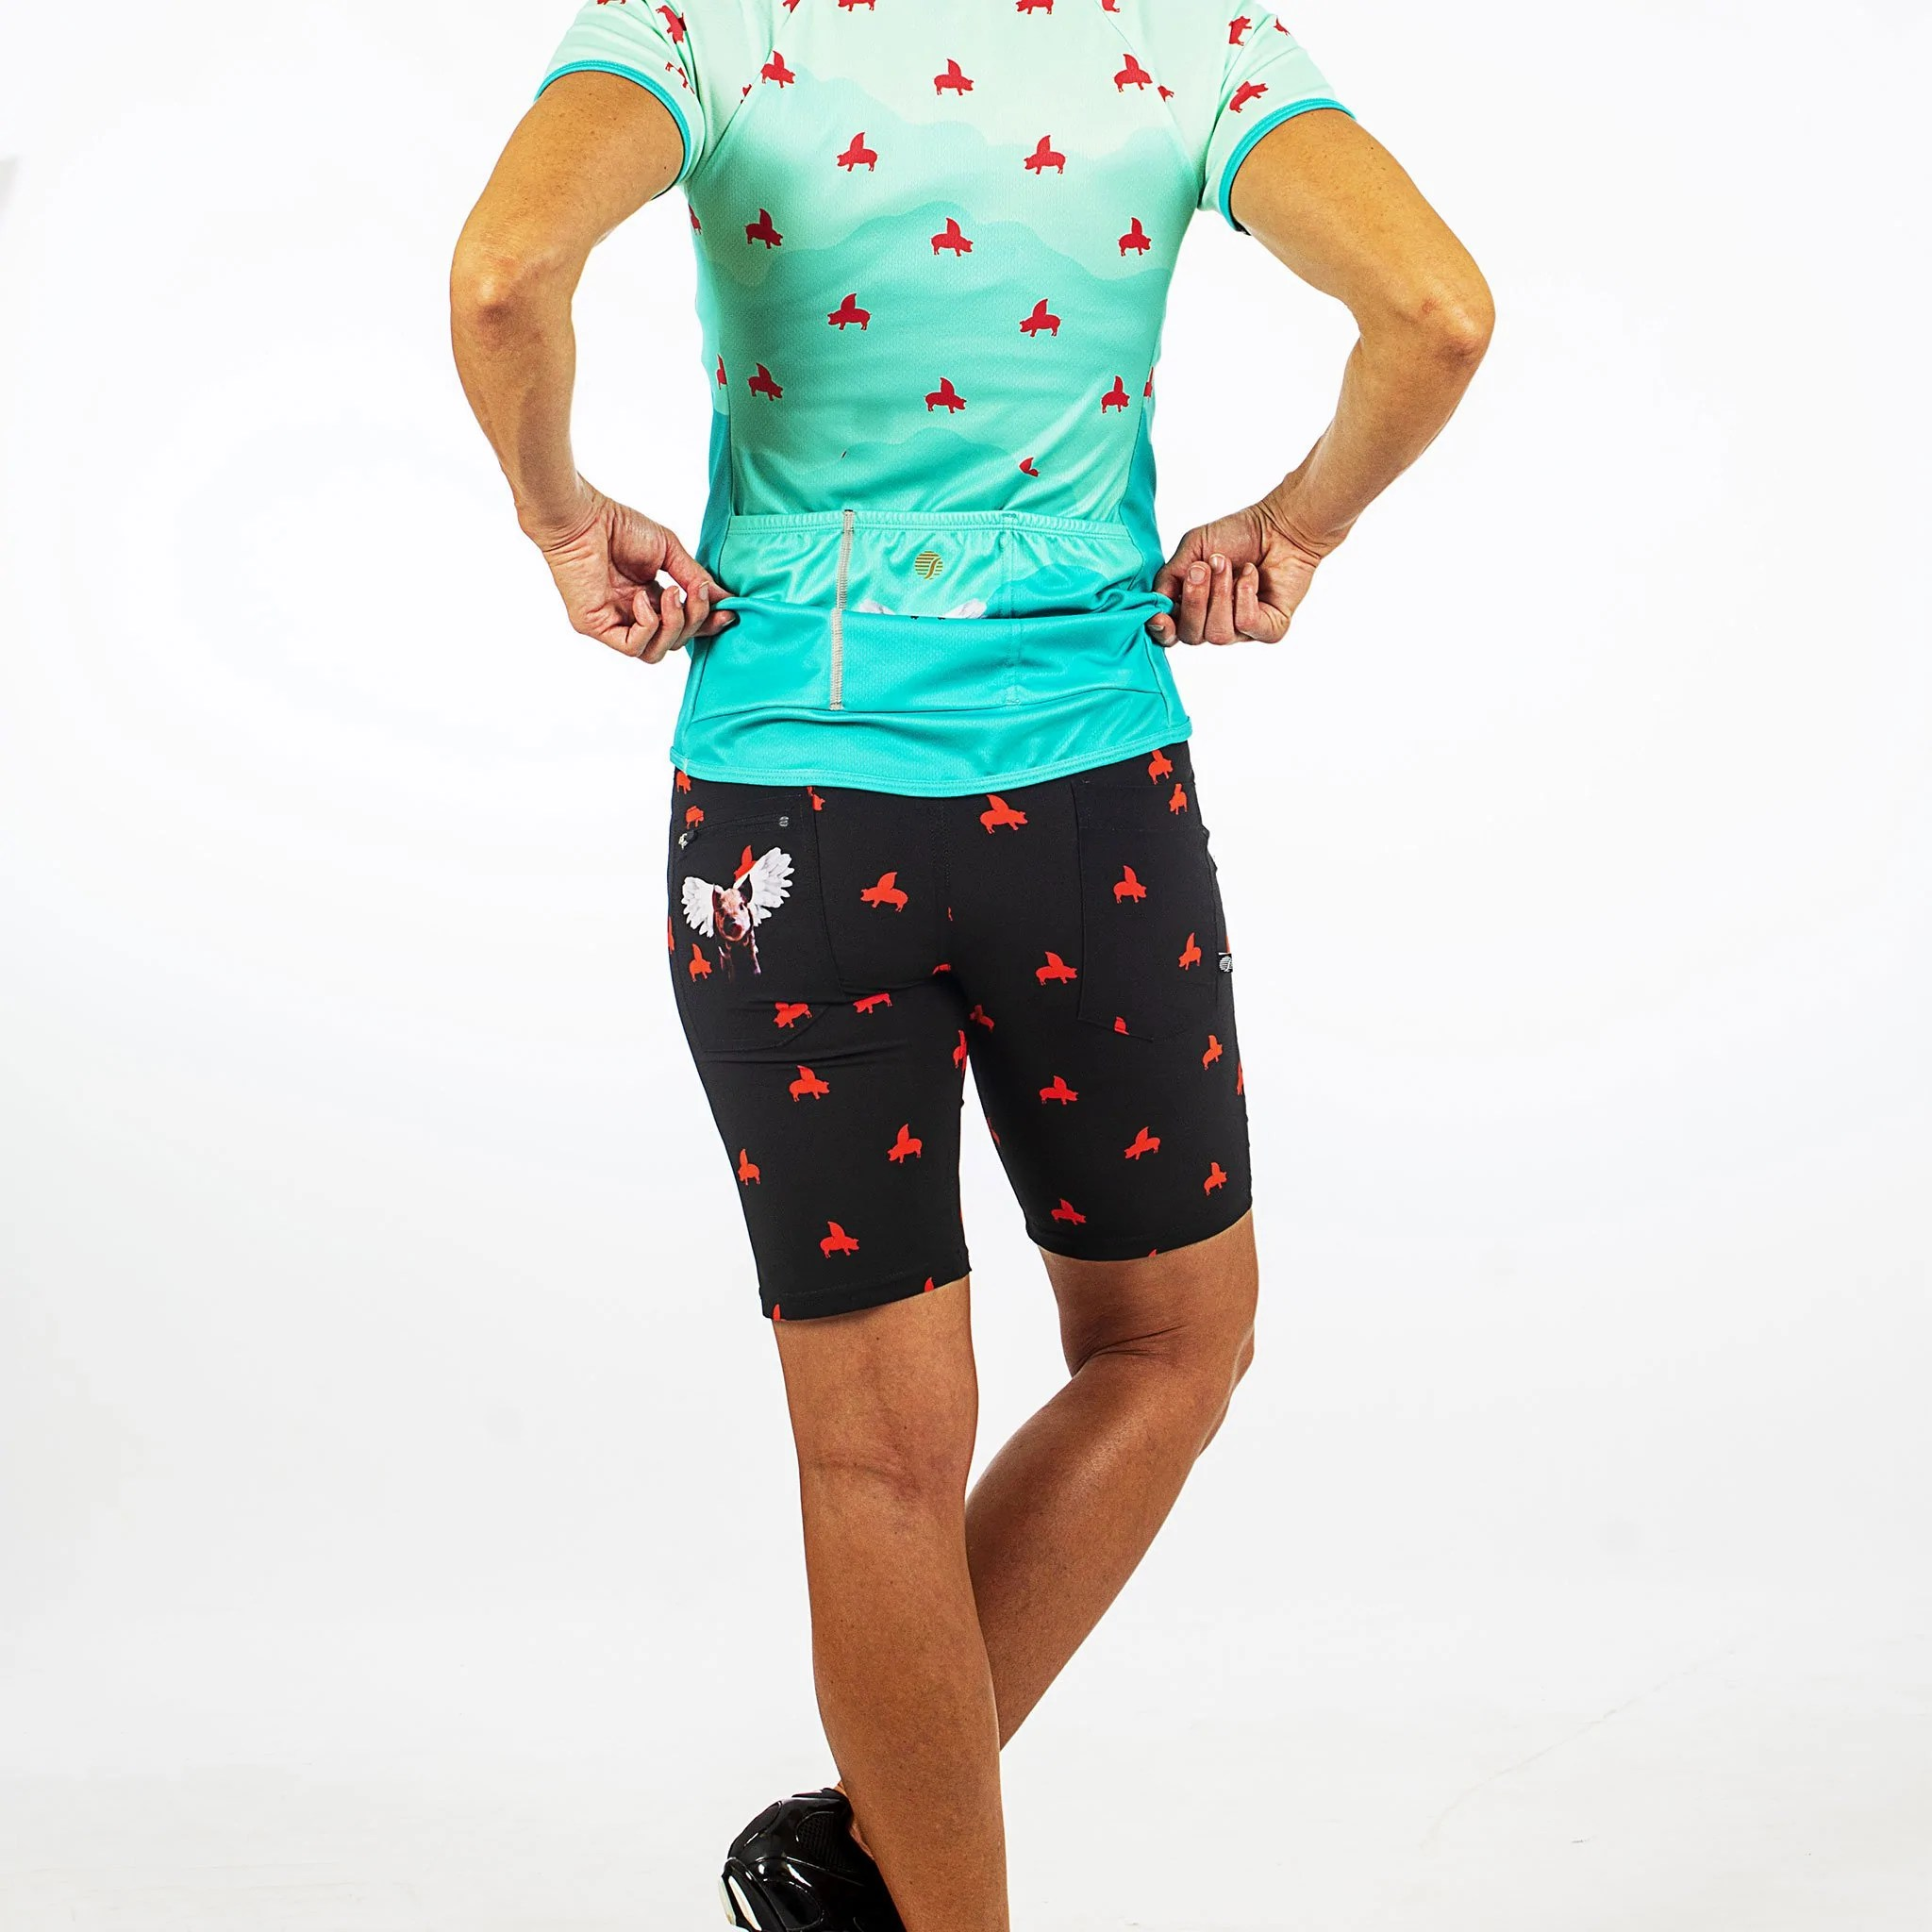 Cycling Clothing Shebeest Women Inspired Cycling Apparel